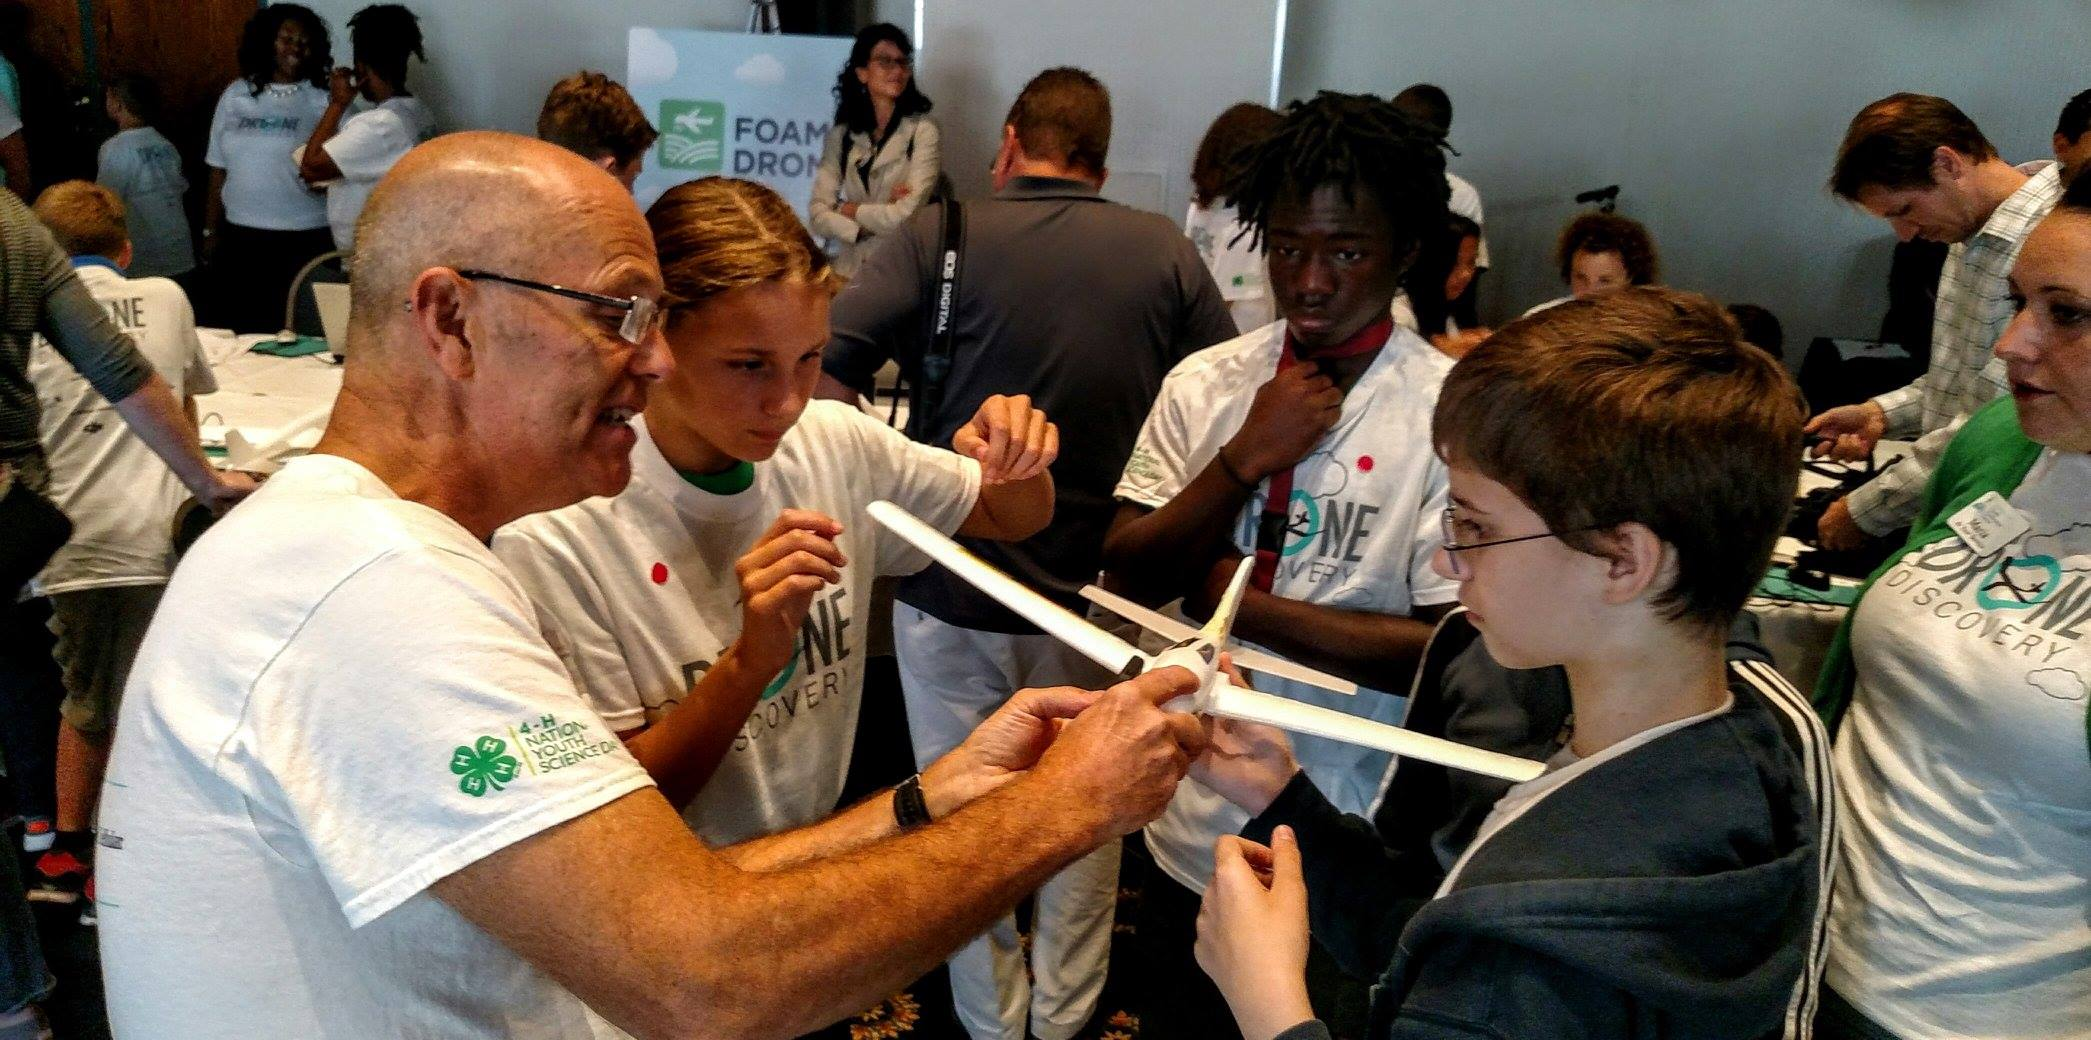 NYS 4-H's Chip Malone is in Washington D.C. engaging the next generation in Drone Discovery.